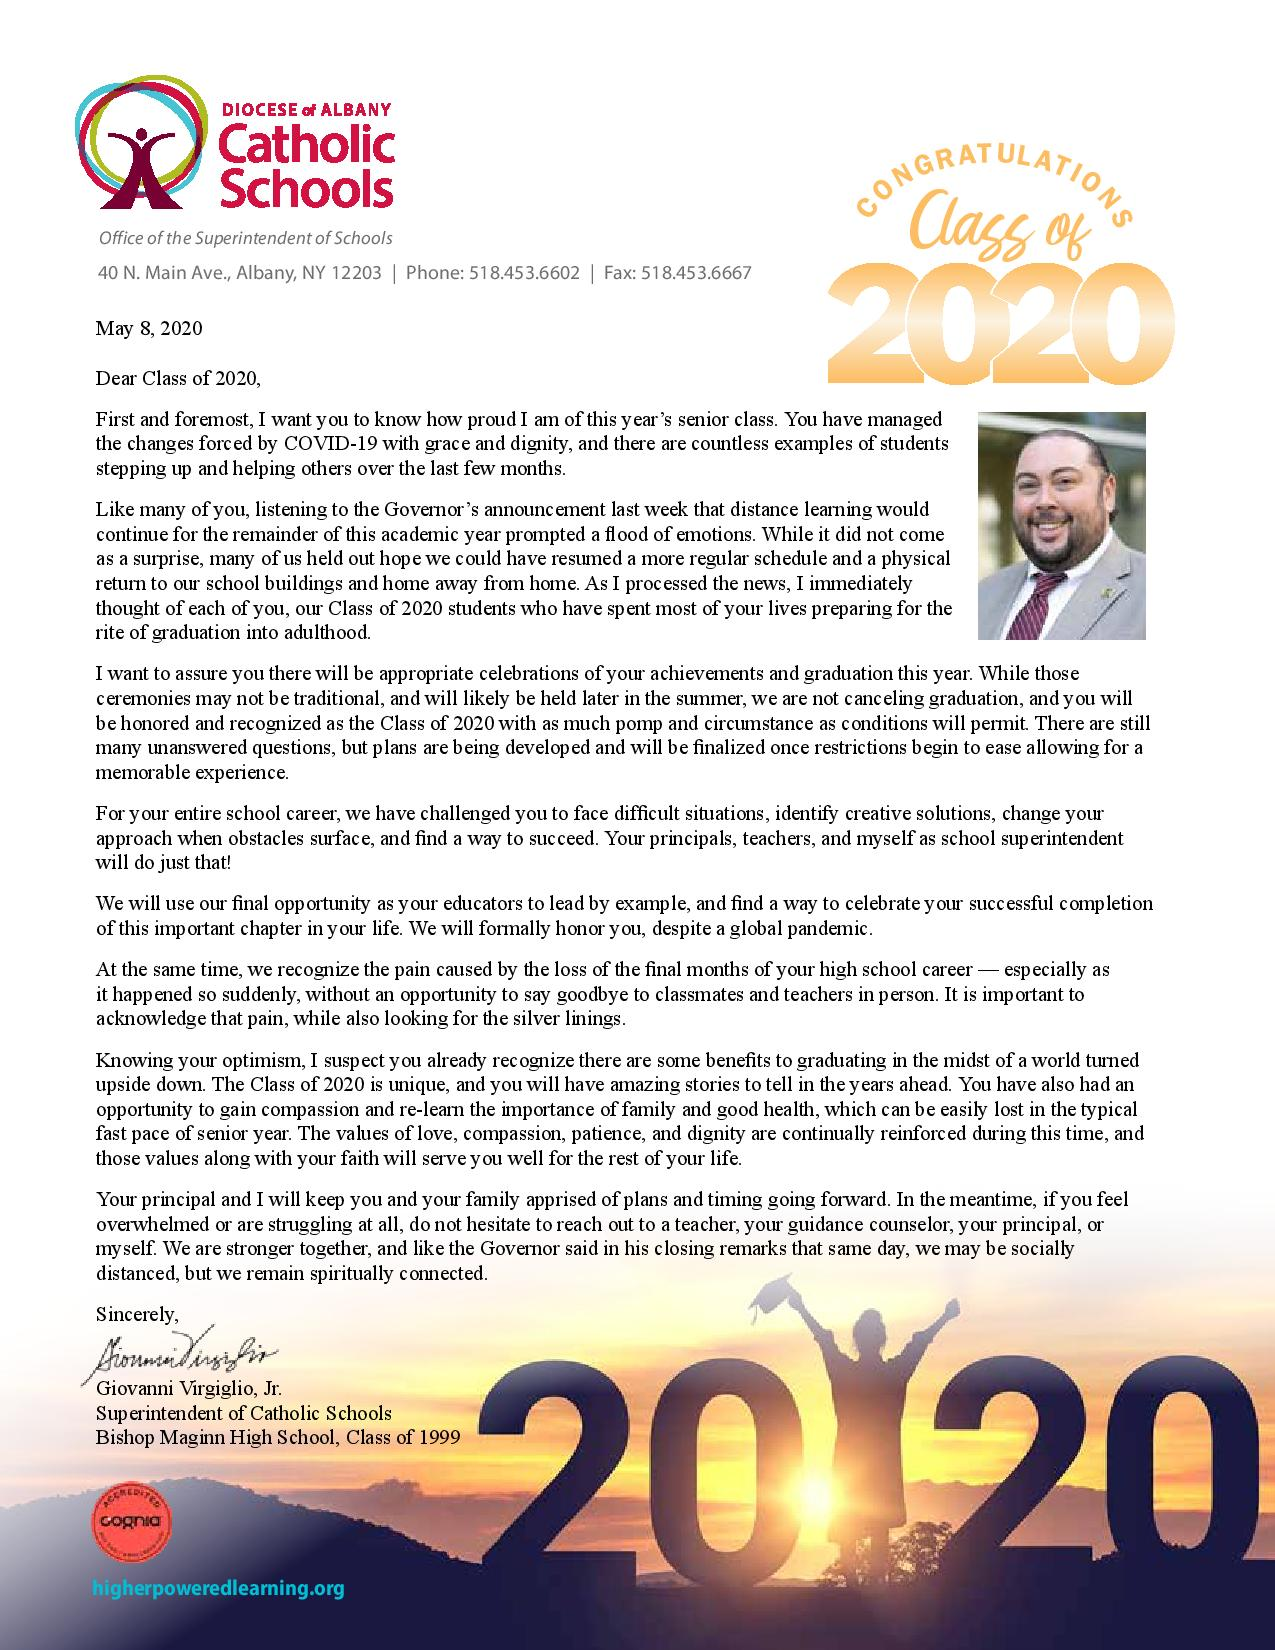 A letter from Supt. Virgiglio to the Class of 2020